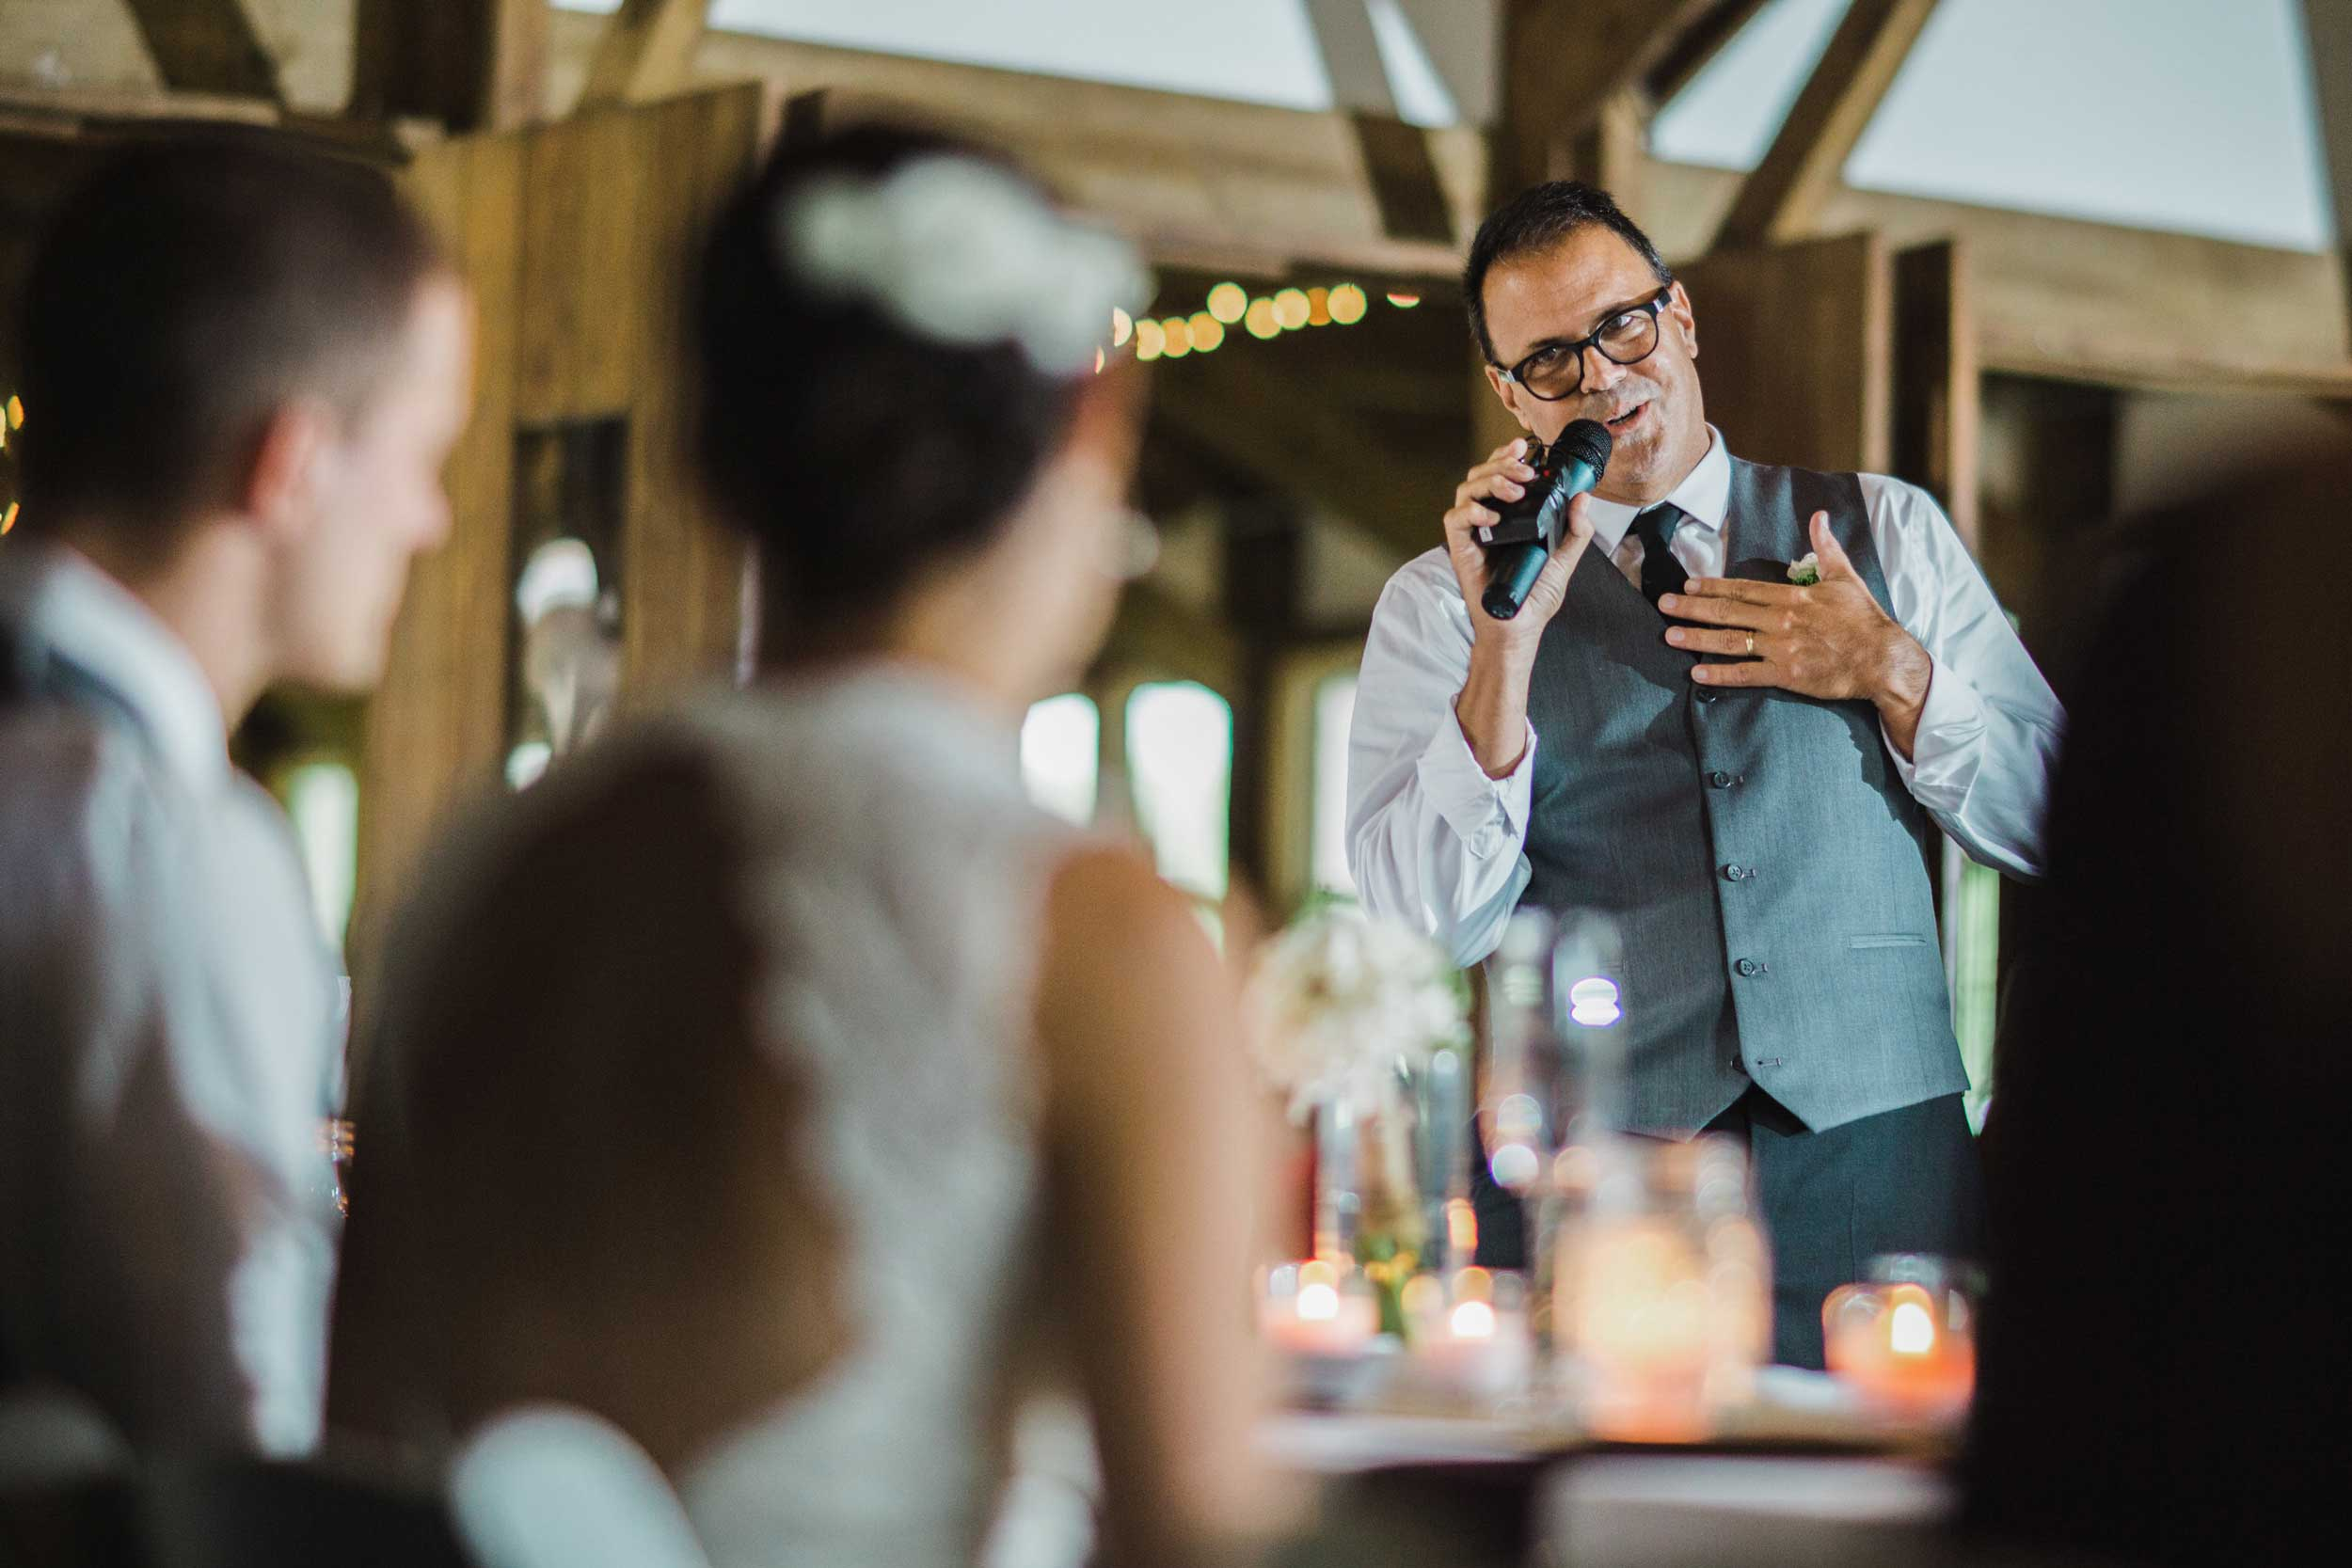 Father of the bride giving an emotional toast